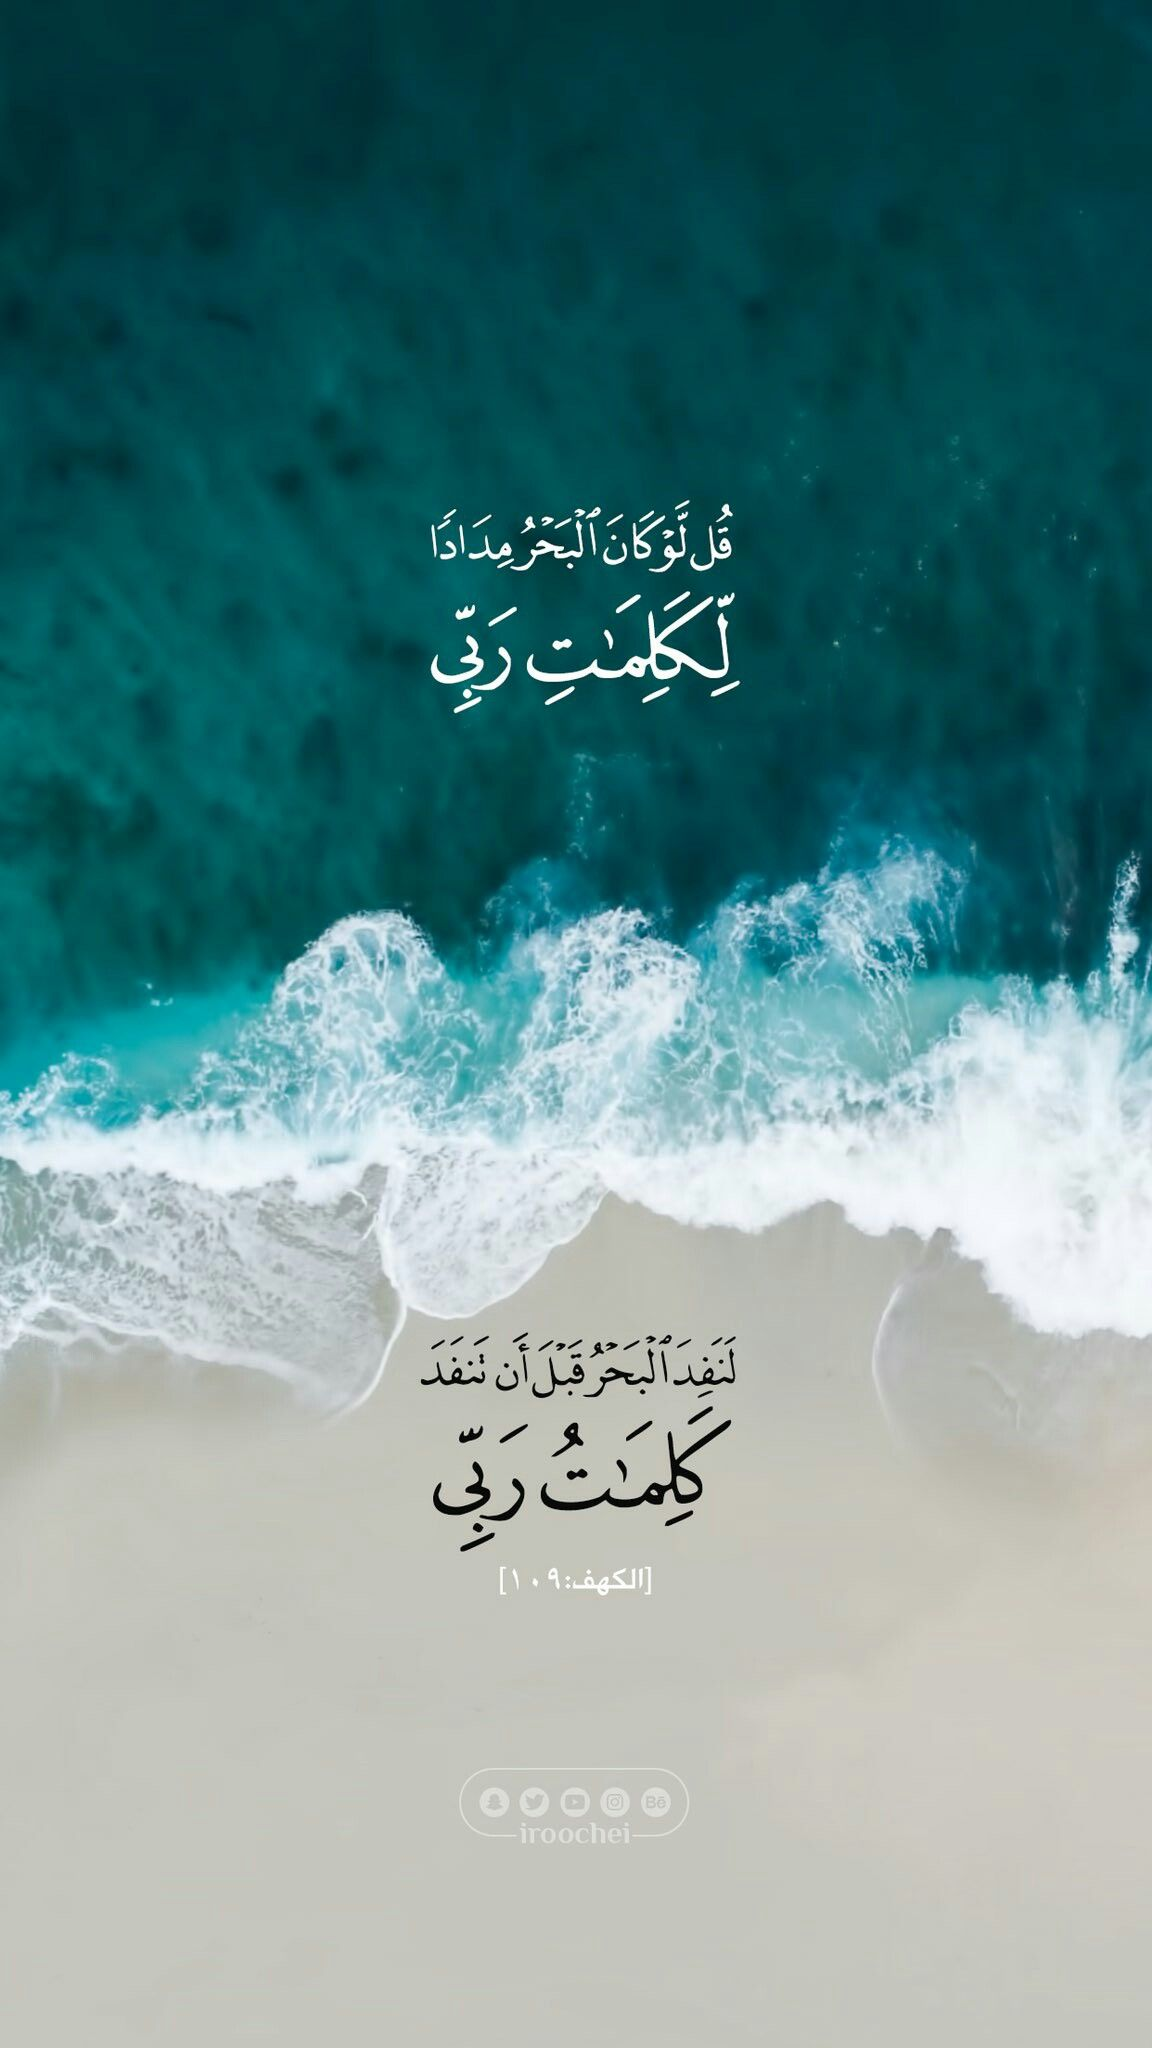 يا رب رحمتك Quran Quotes Love Quran Quotes Islamic Inspirational Quotes